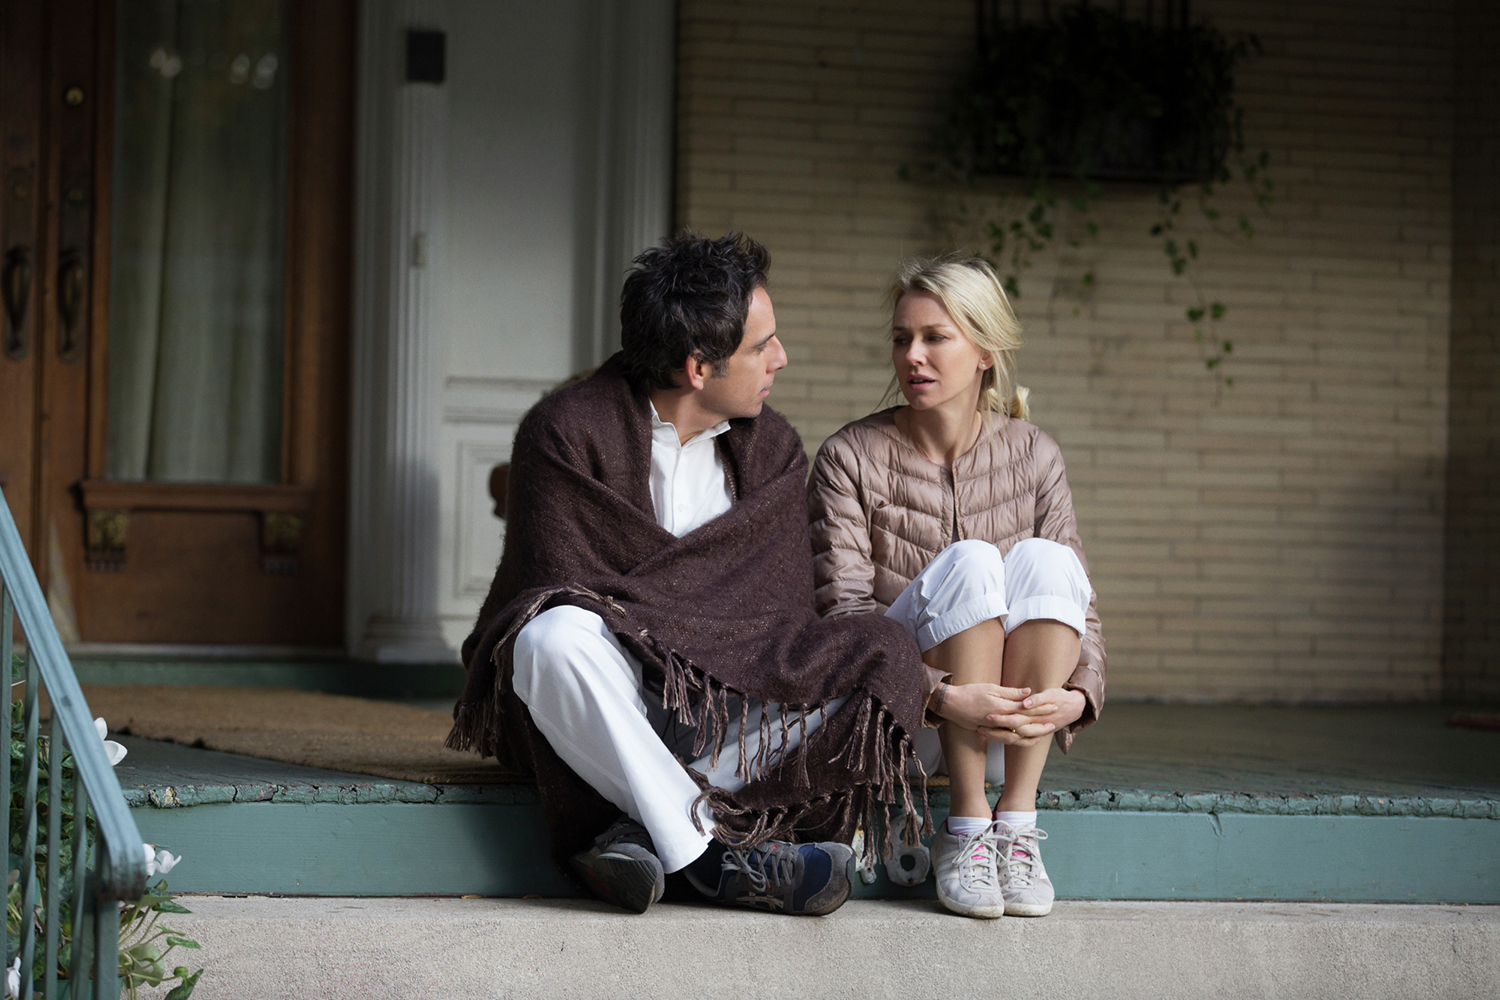 Culture Tip: While We're Young